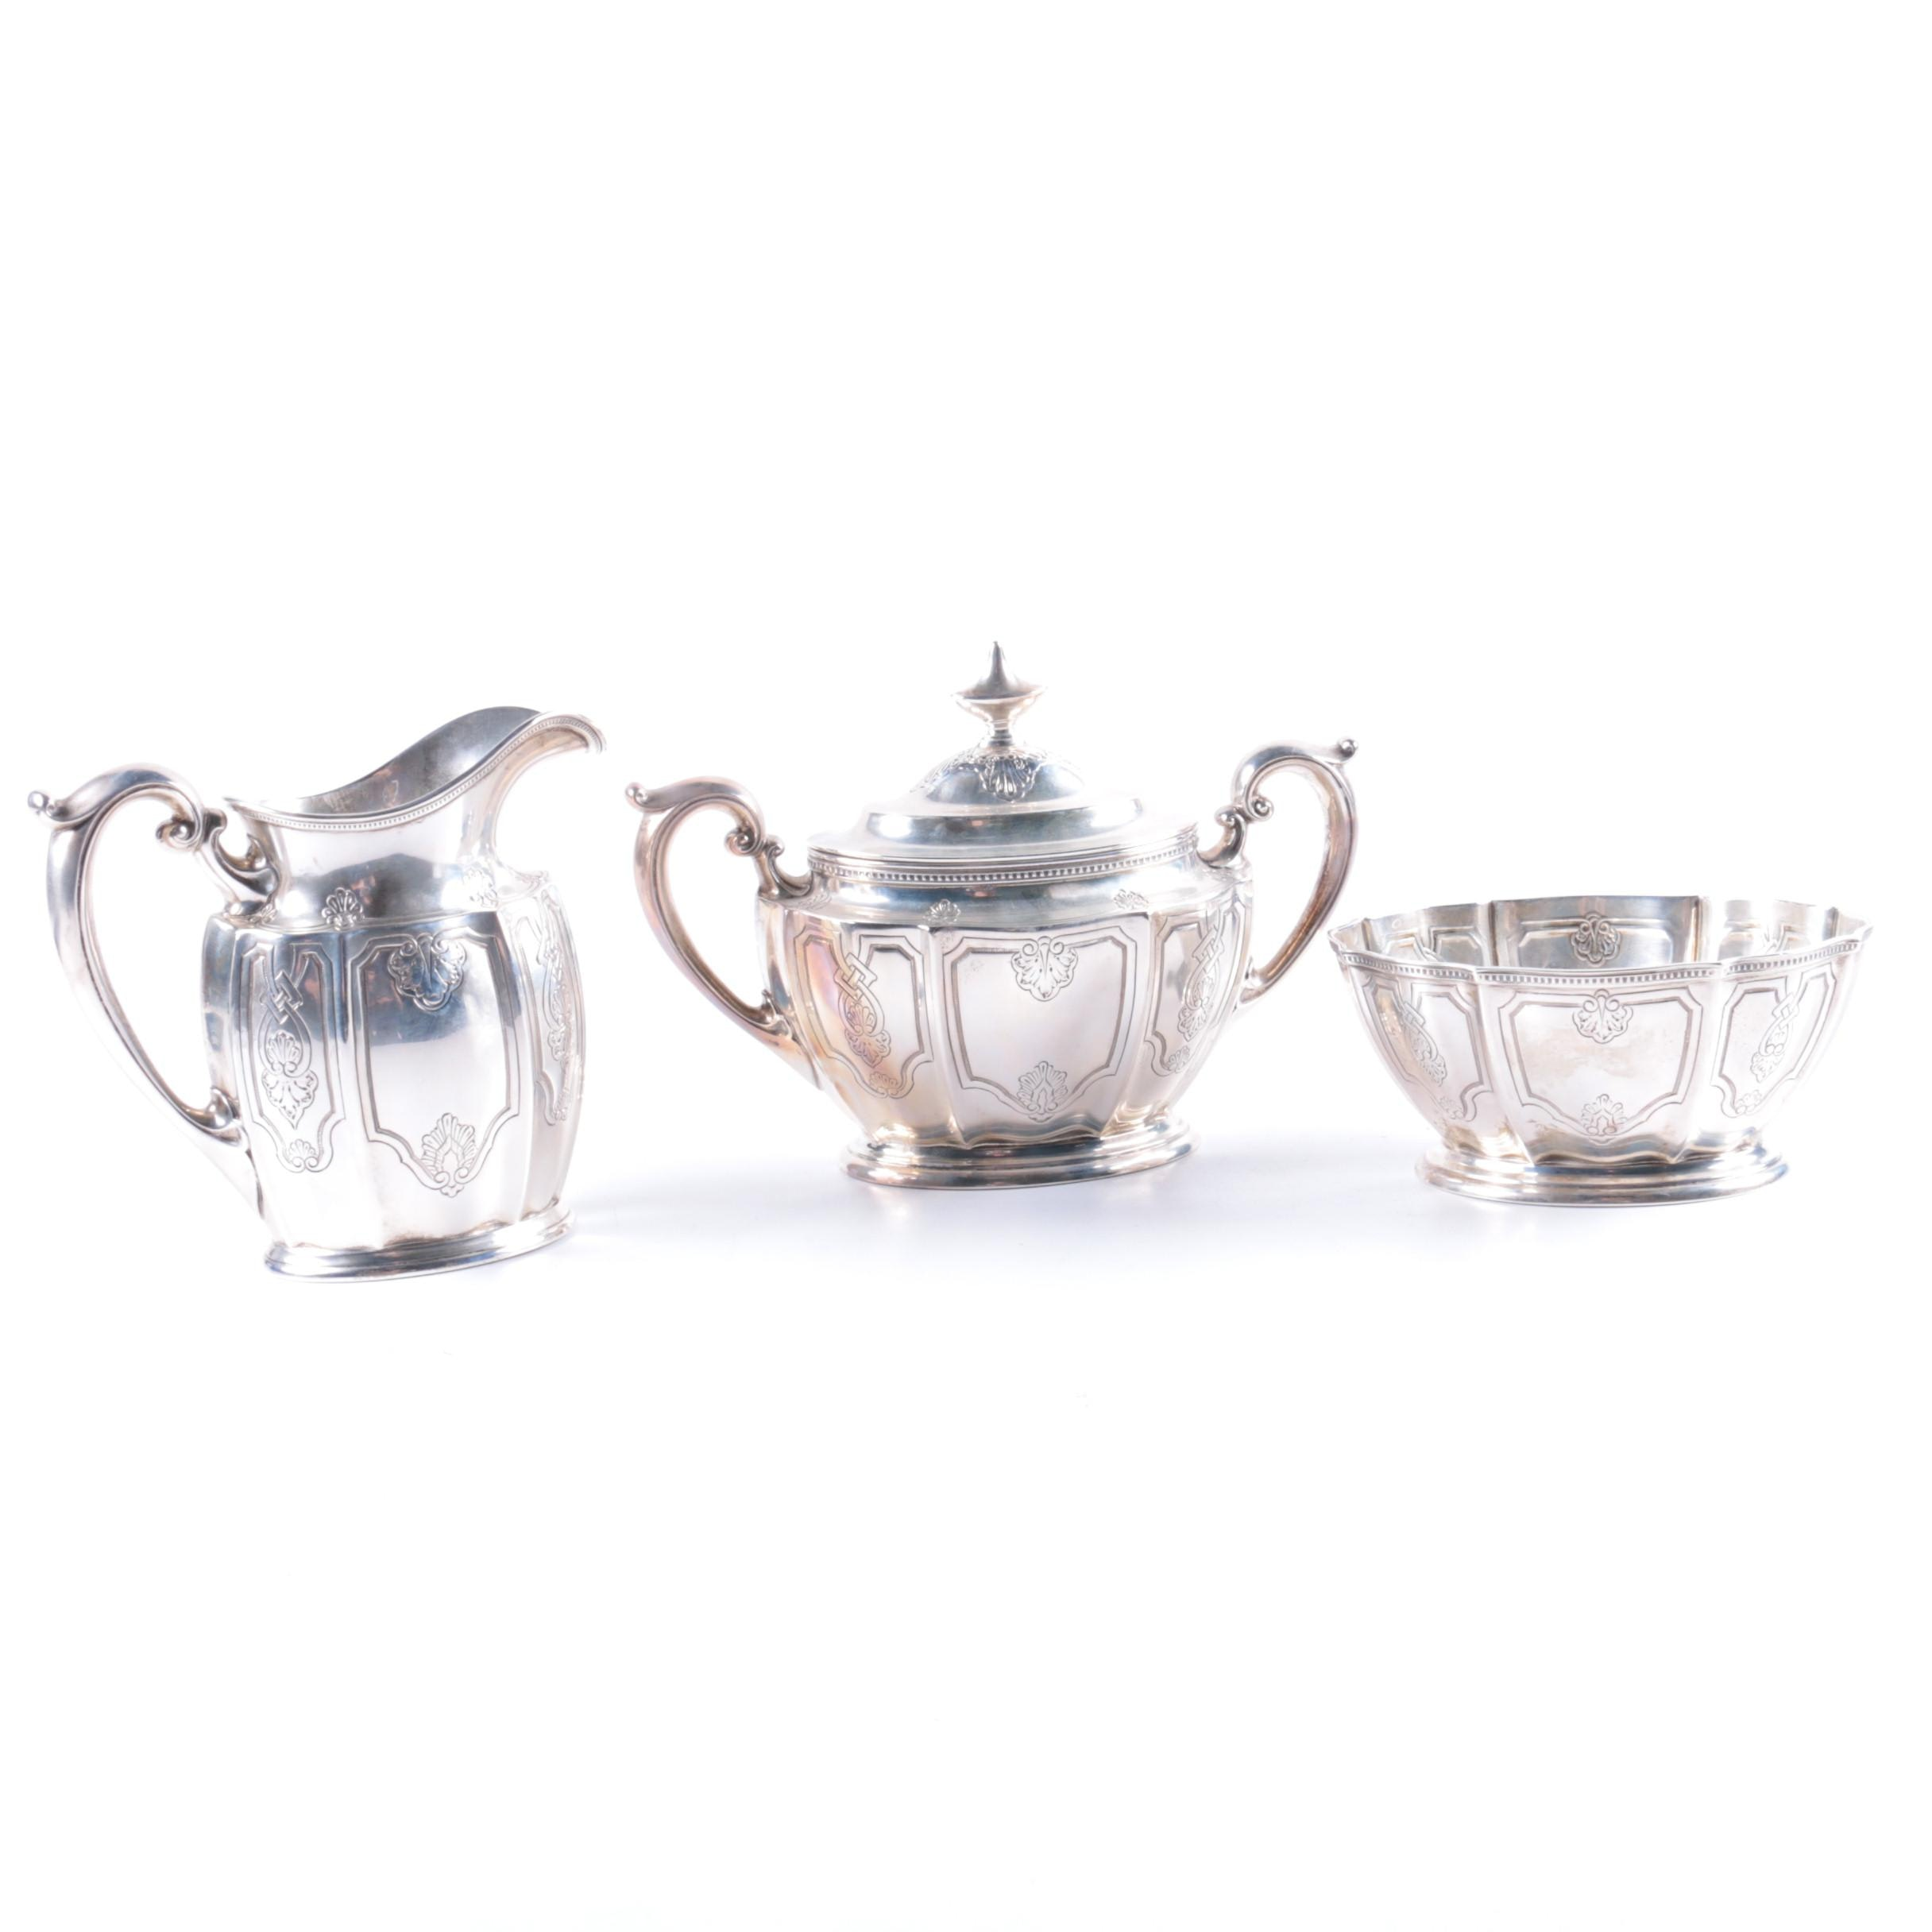 1929 Gorham Sterling Silver Creamer, Sugar Bowl, and Waste Bowl Set